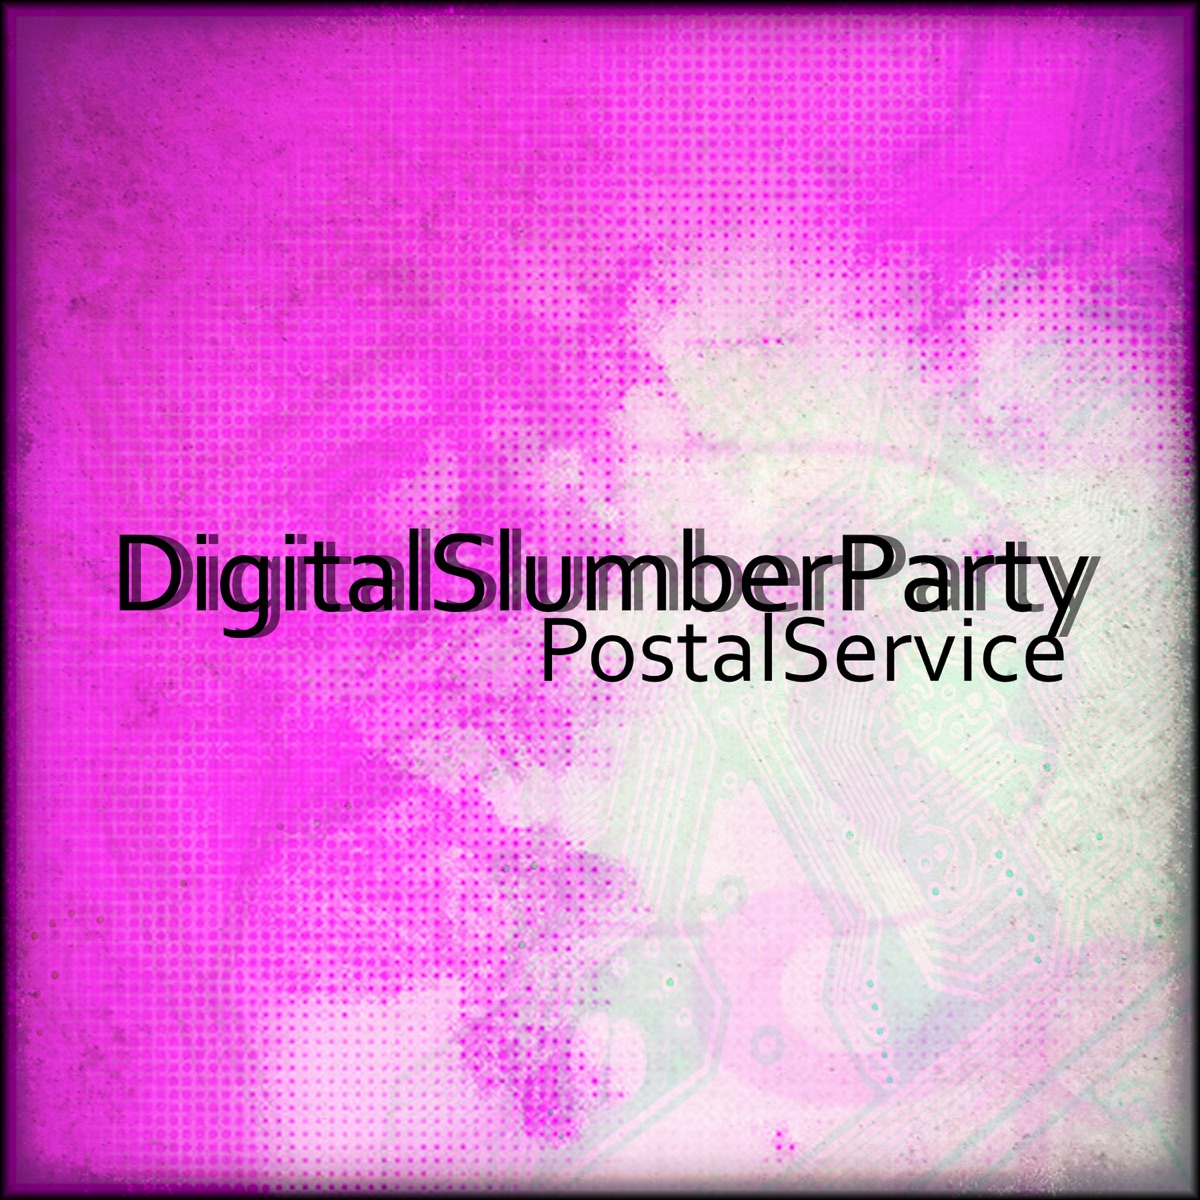 Postal Service - Single Digital Slumber Party CD cover